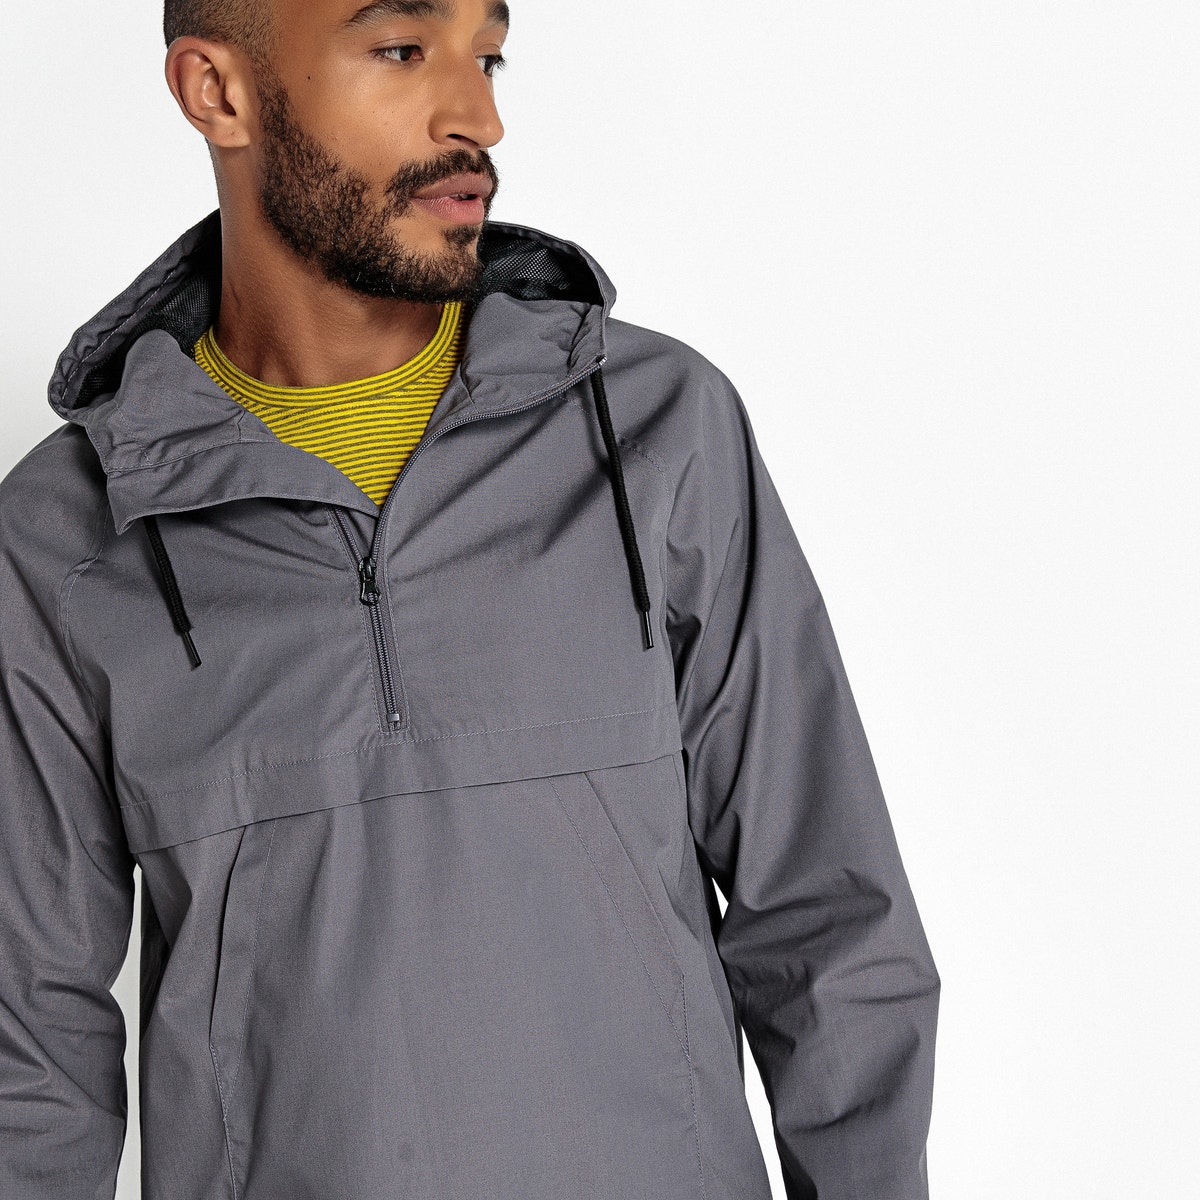 La Windbreaker rossooute Collections UOMO IMPERMEABILE Windbreaker La 24e505